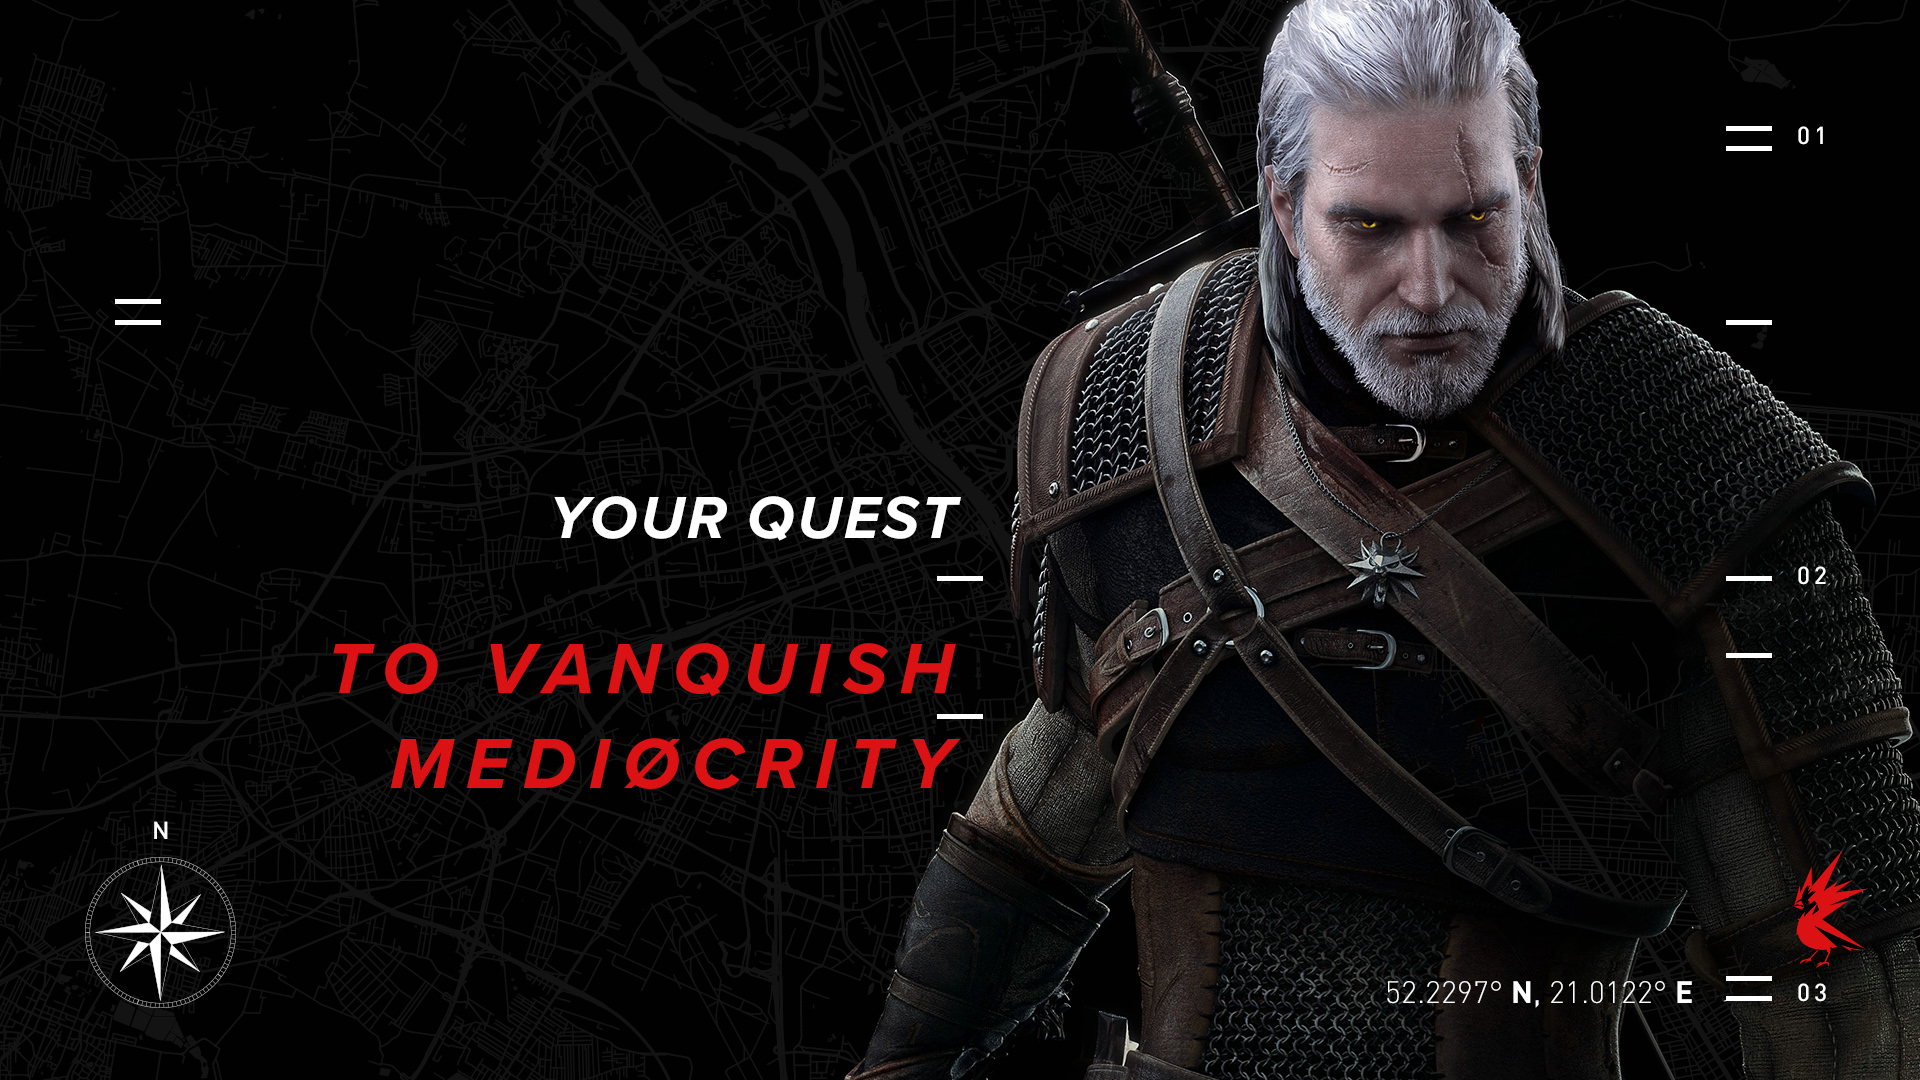 Geralt of Rivia on a black background with text